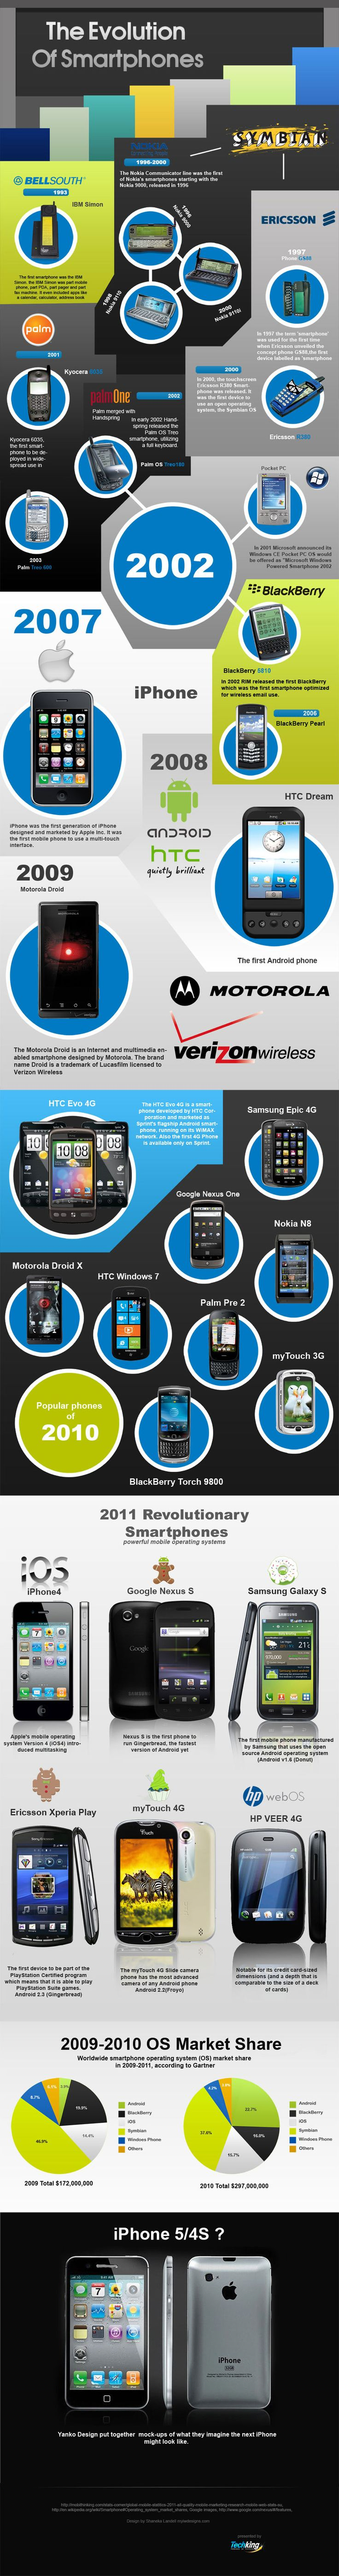 The-Evolution-Of-Smartphones-infographic  Find always more on http://infographicsmania.com